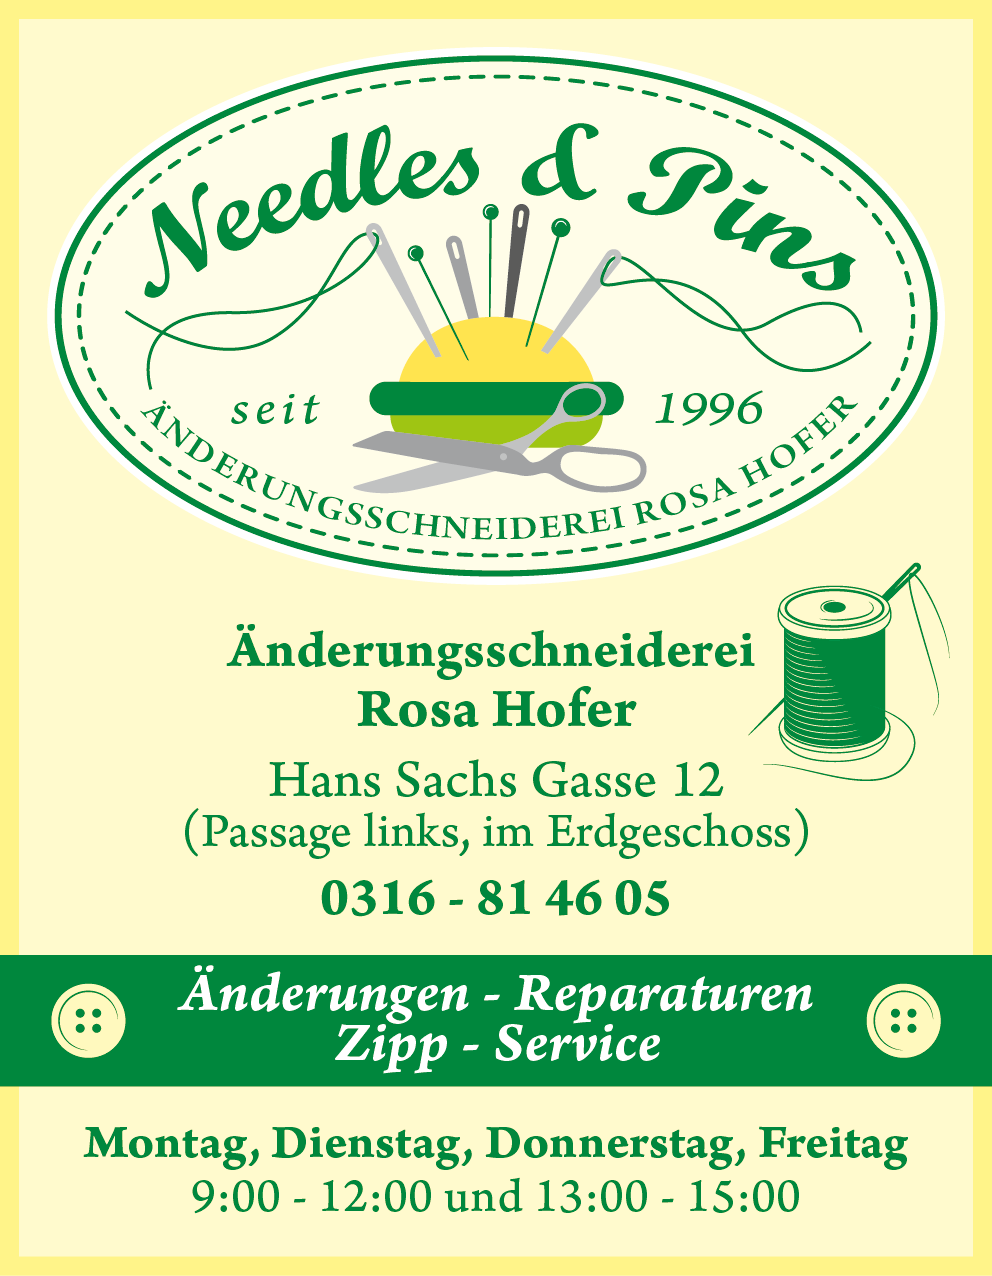 needles pins Logo Plakataufsteller